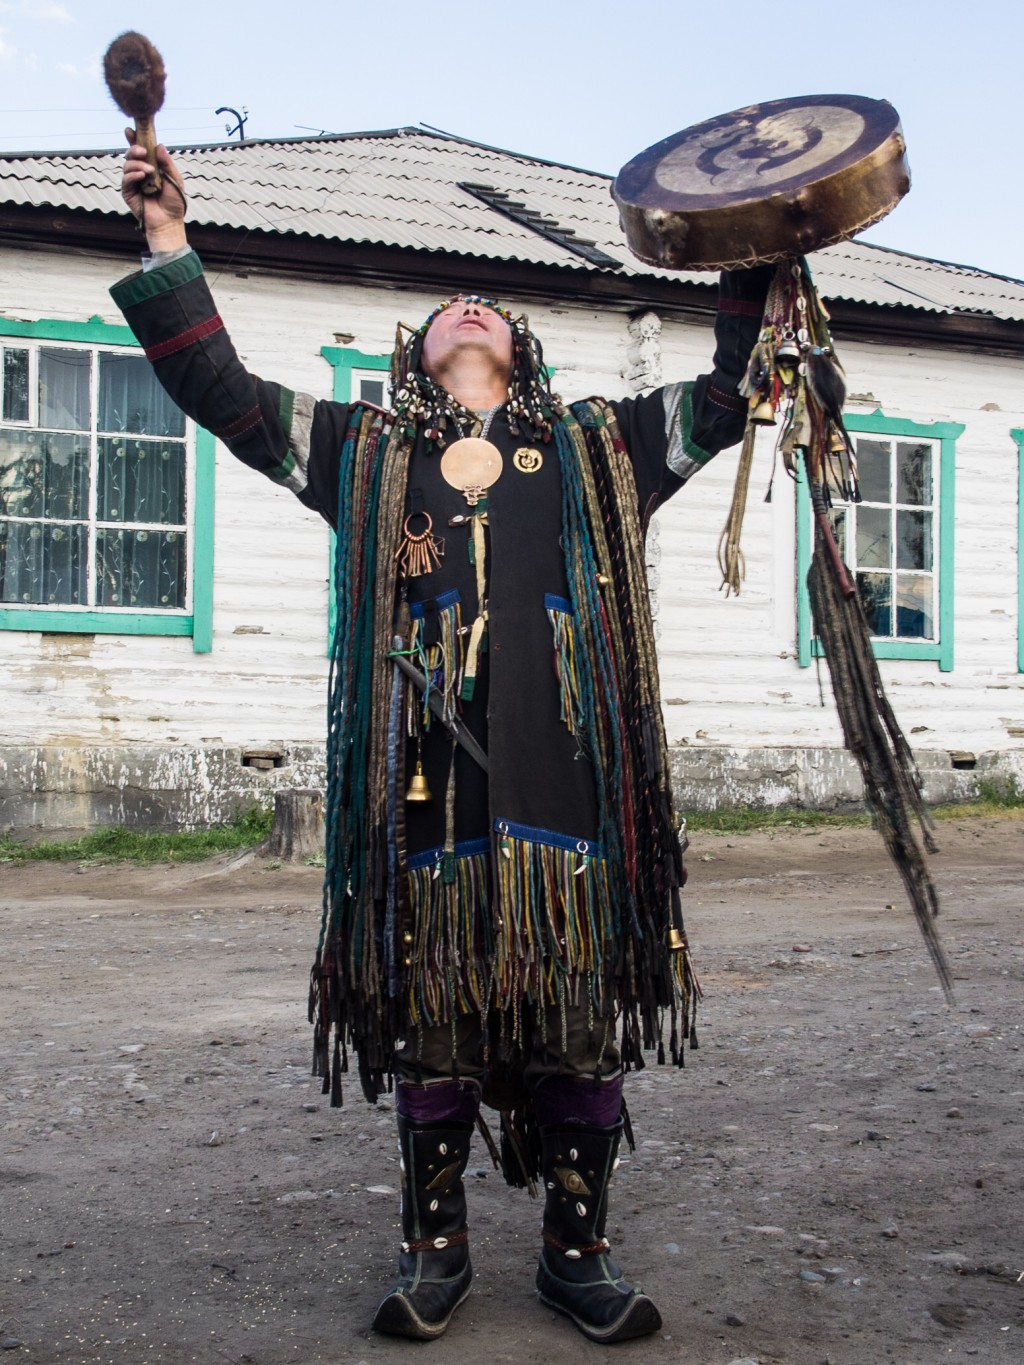 Centre for Tuvan Culture Kyzyl, The Tuva ethnic group: a secret culture behind Siberian forests ...